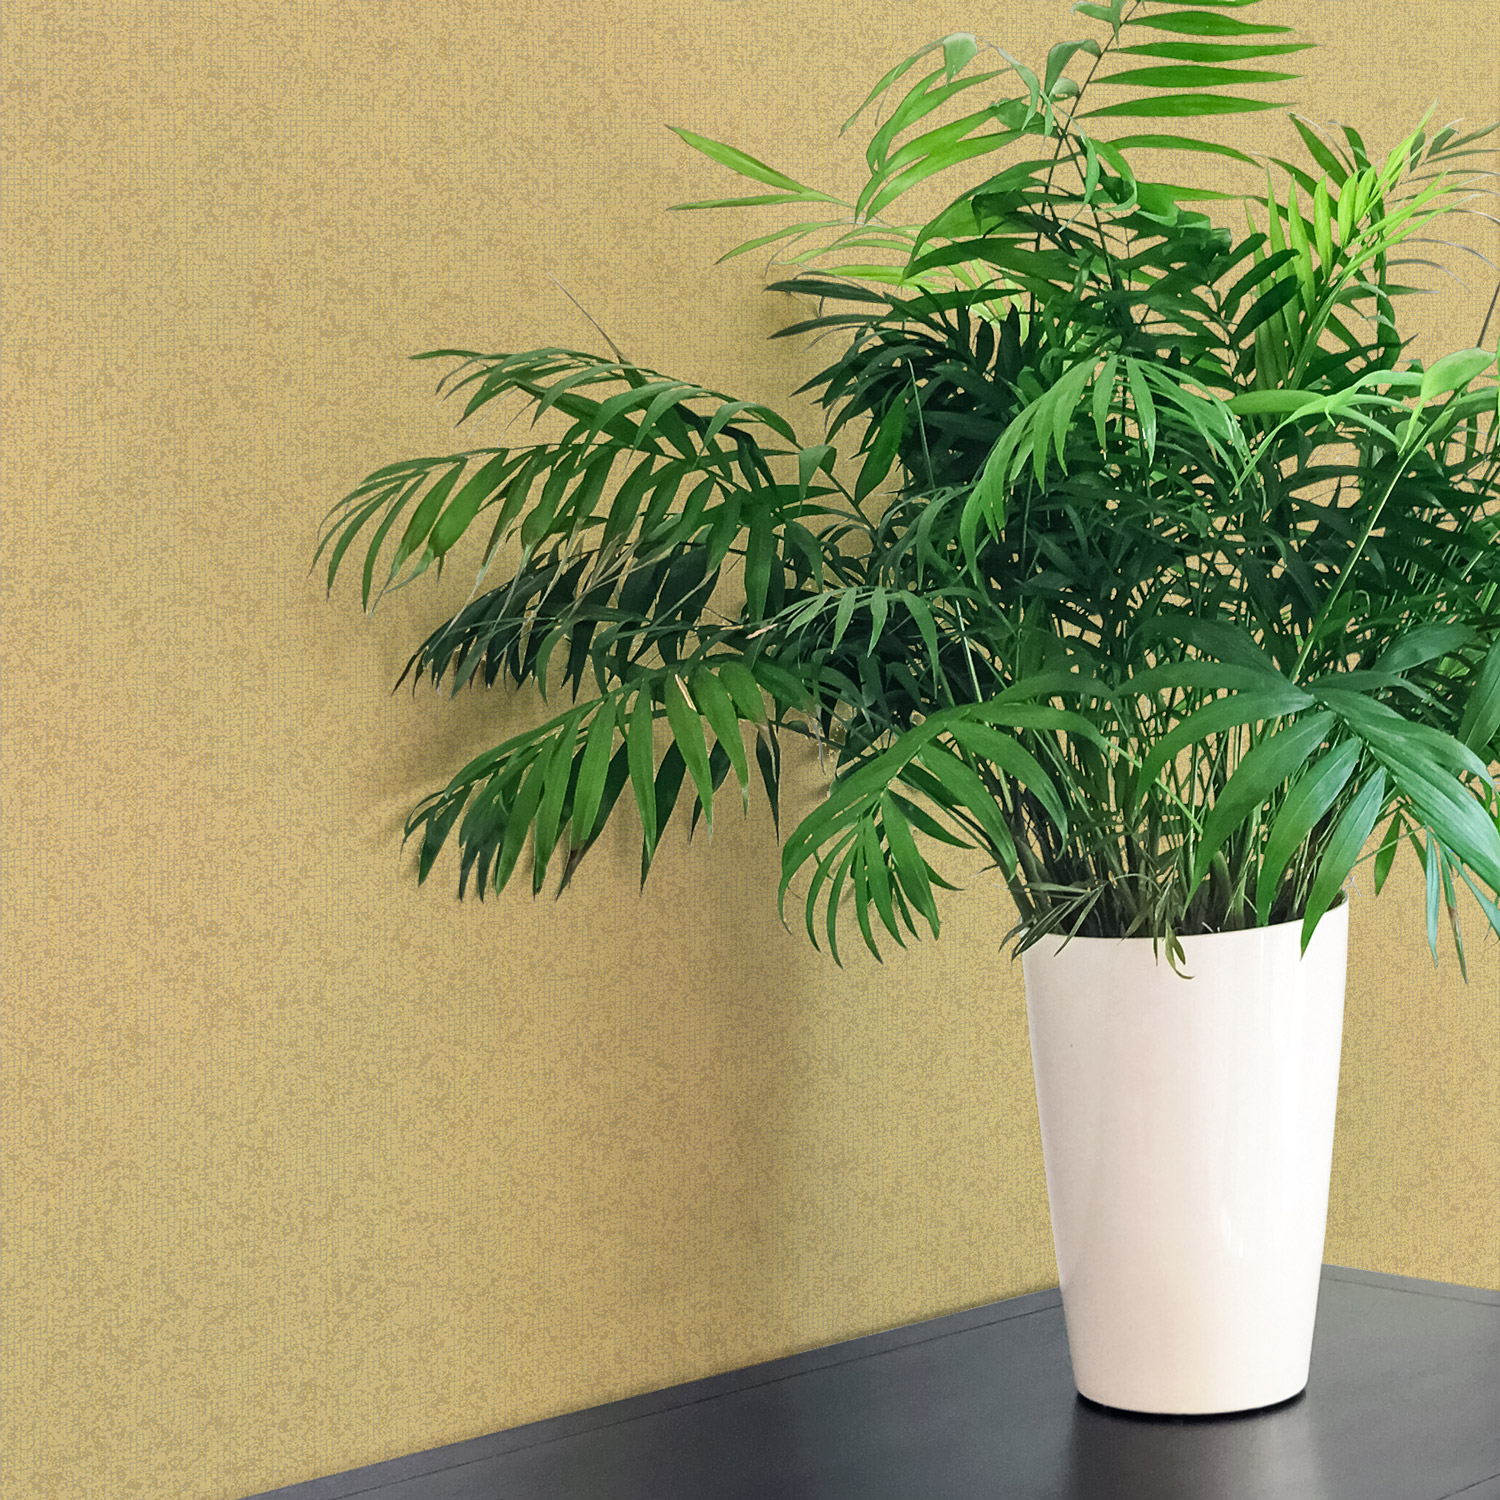 Lifestyle image of wallpaper Keymer WP0080203 behind a fern plant